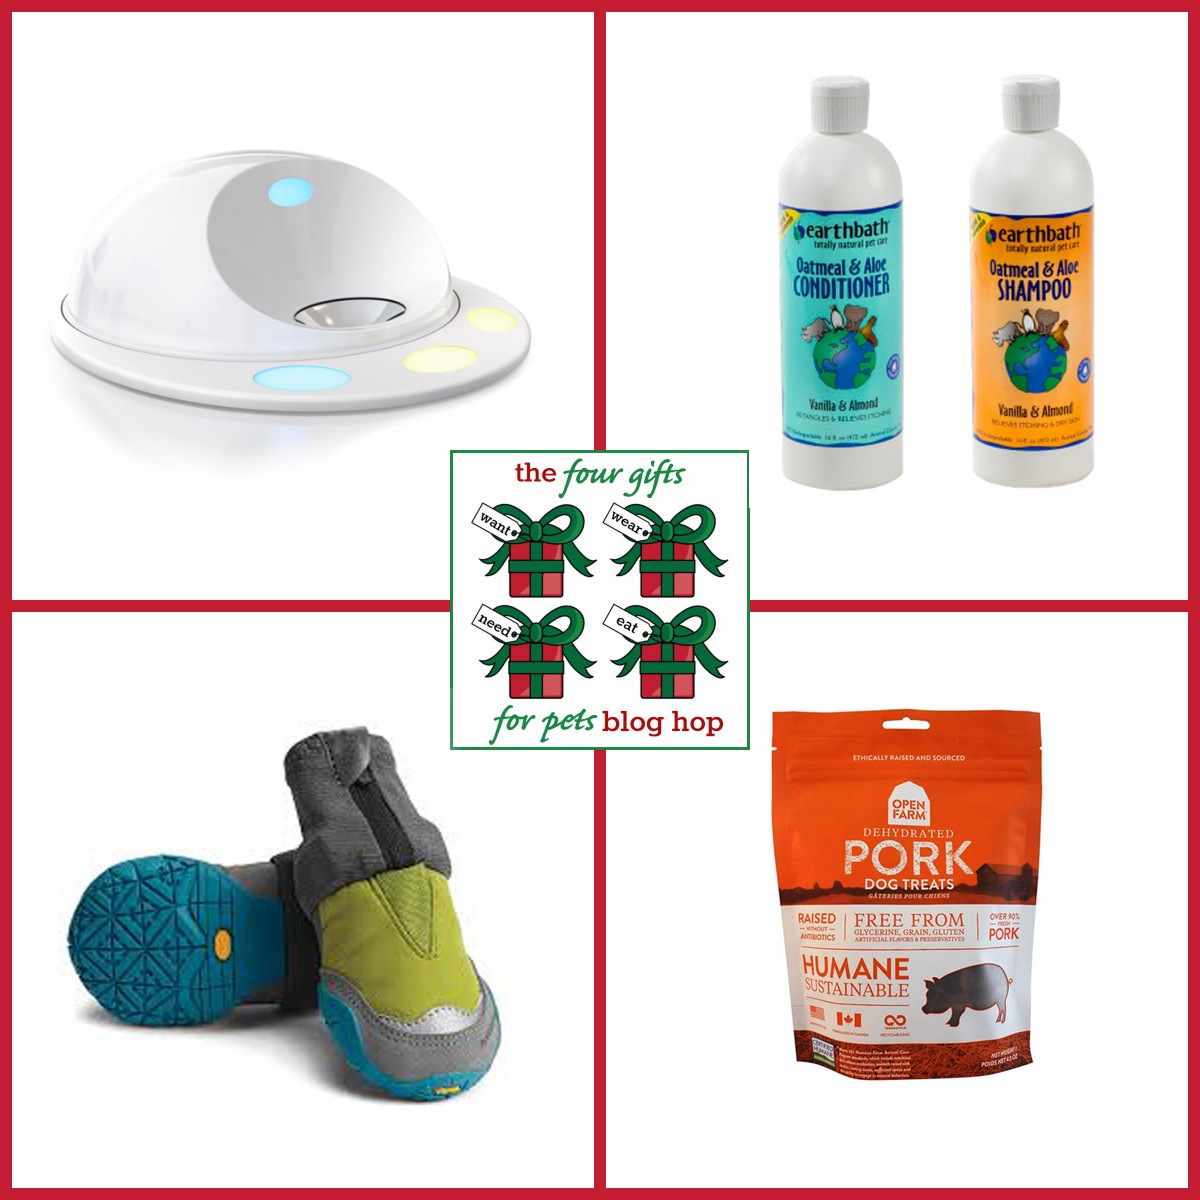 Ruby's choices for must have items in the 4 Gifts for Pet Blog Hop and Giveaway